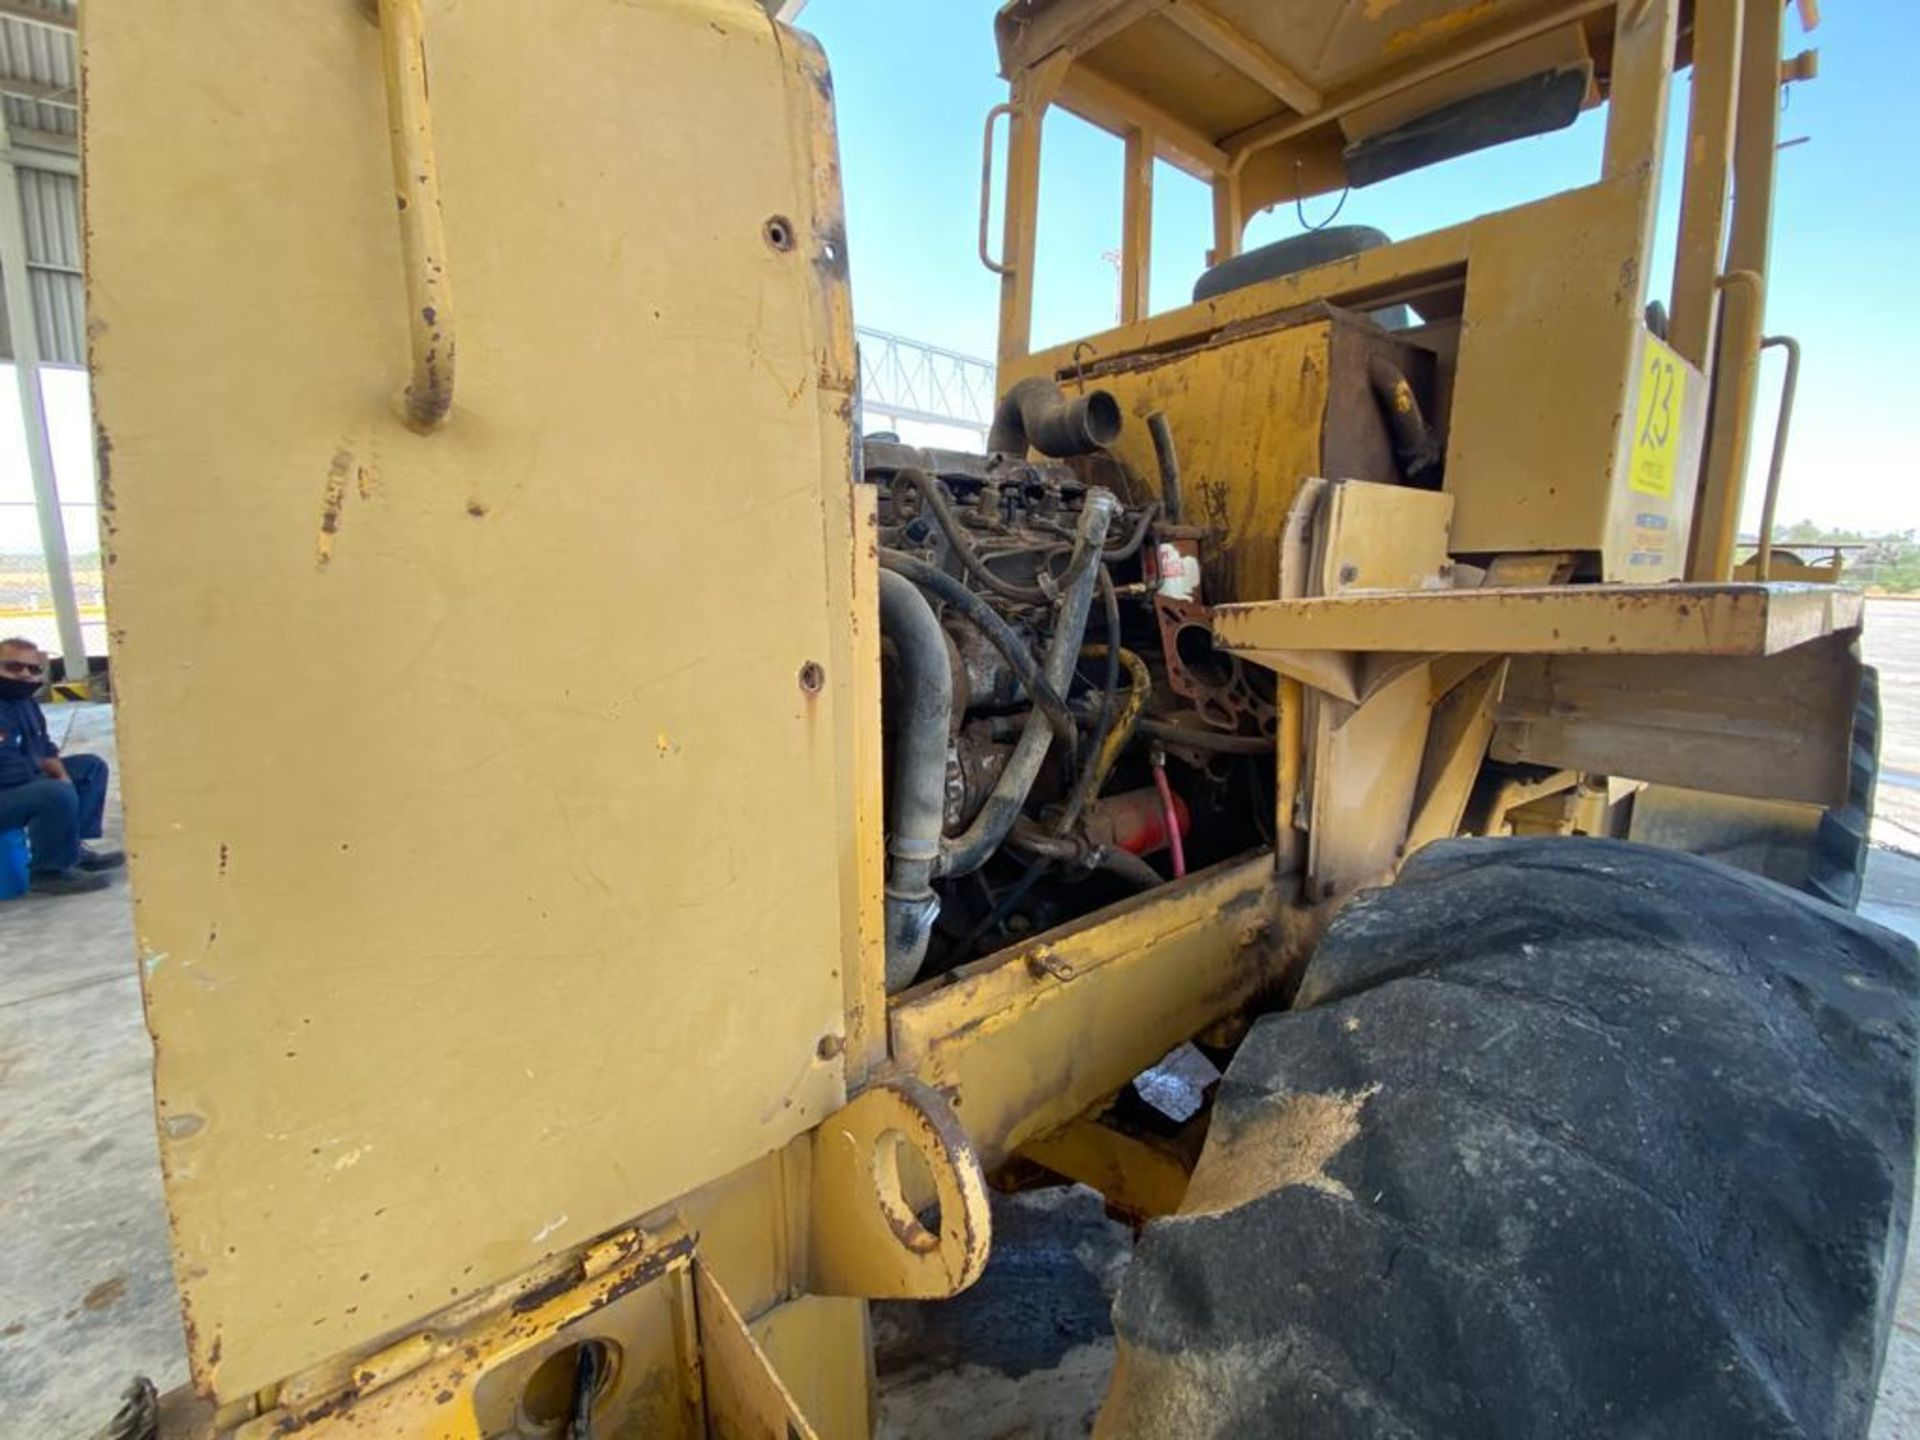 Volvo BM TYPE L 30 Michigan Front Loder, automatic transmission - Image 41 of 53